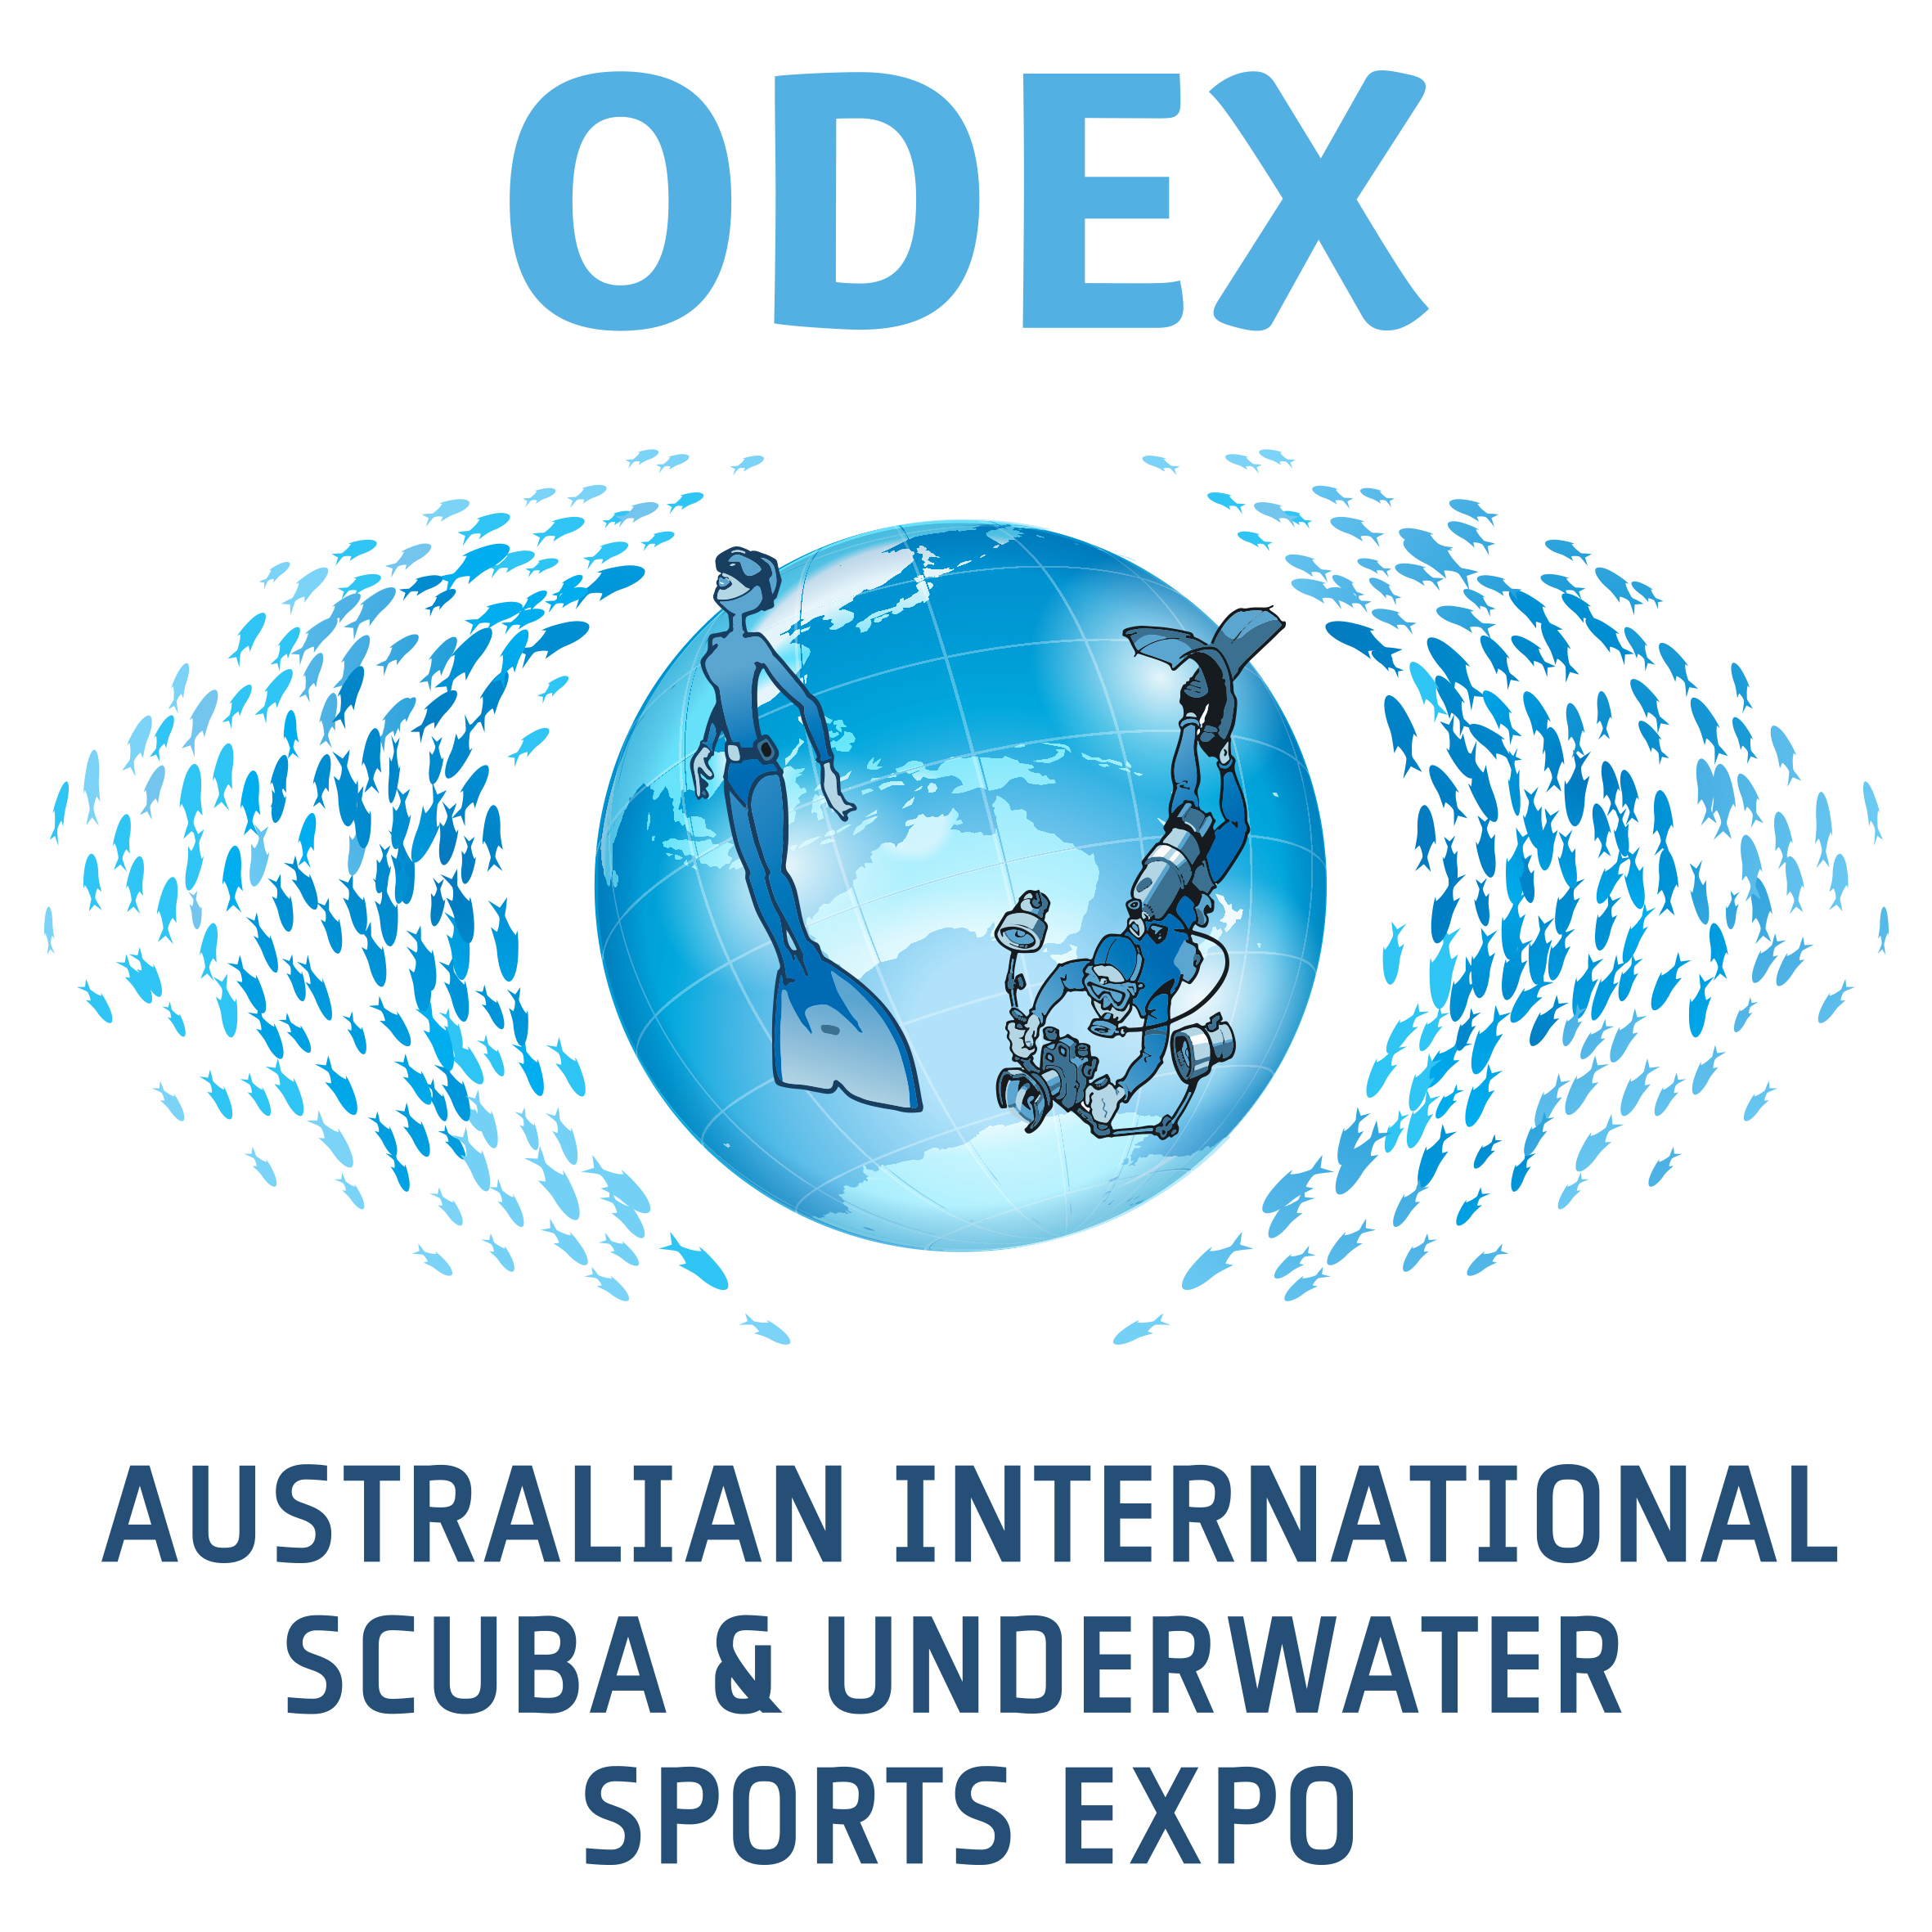 Join me at ODEX!